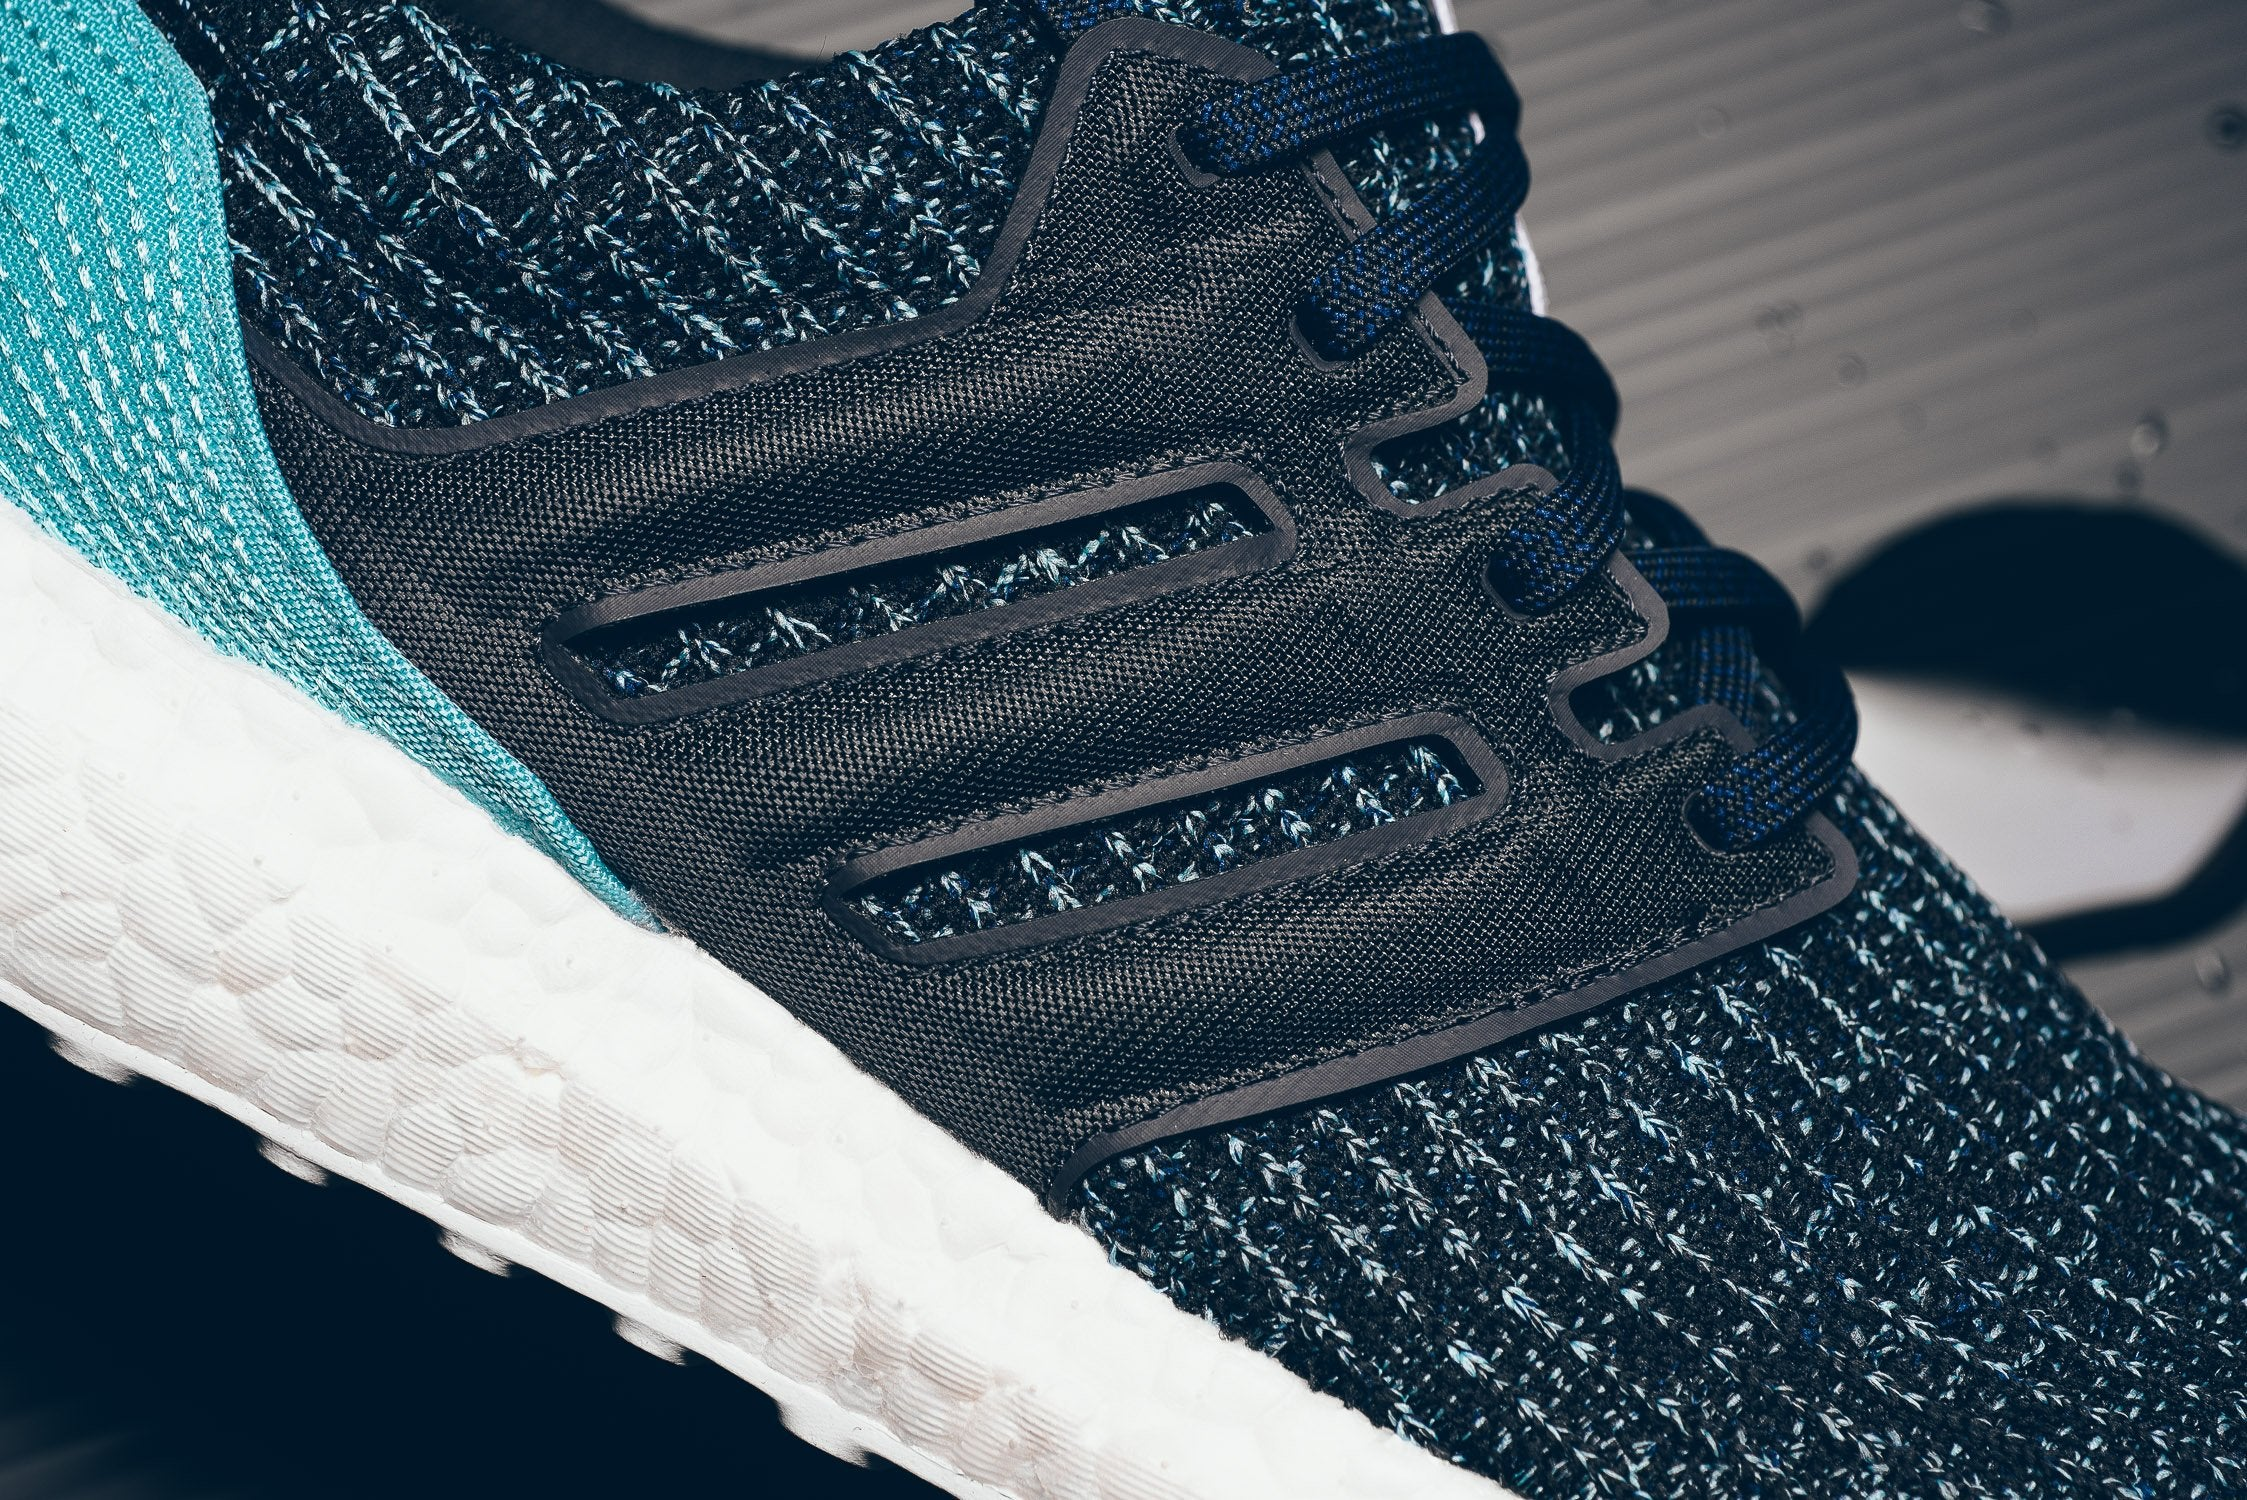 new products c4f64 130d2 Parley x adidas Ultra Boost 4.0 - Carbon/Blue Spirit #CG3673 ...